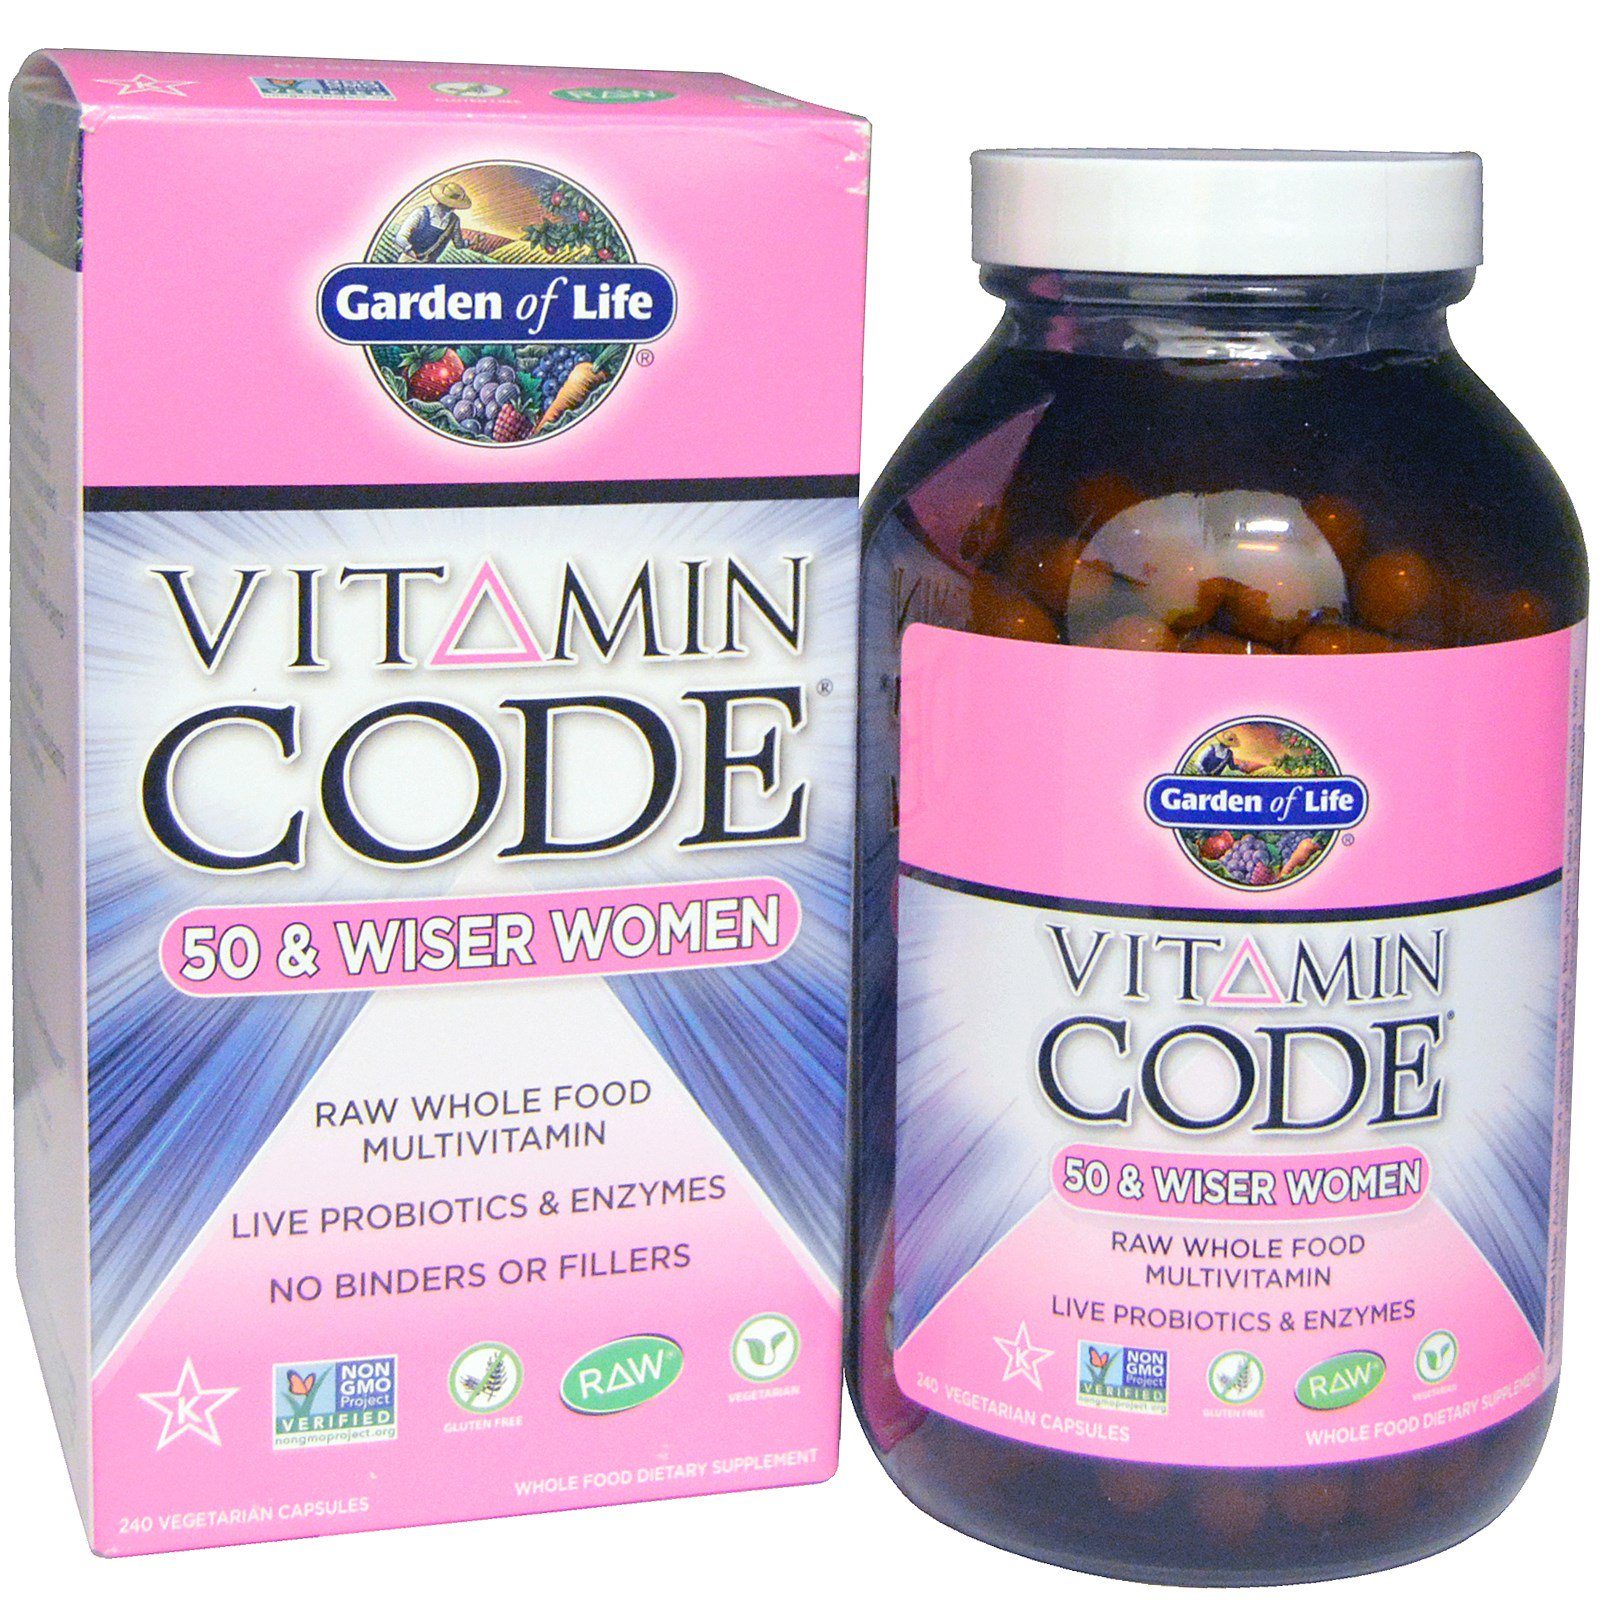 garden of life vitamin code 50 wiser women raw whole food multivitamin - Garden Of Life Multivitamin